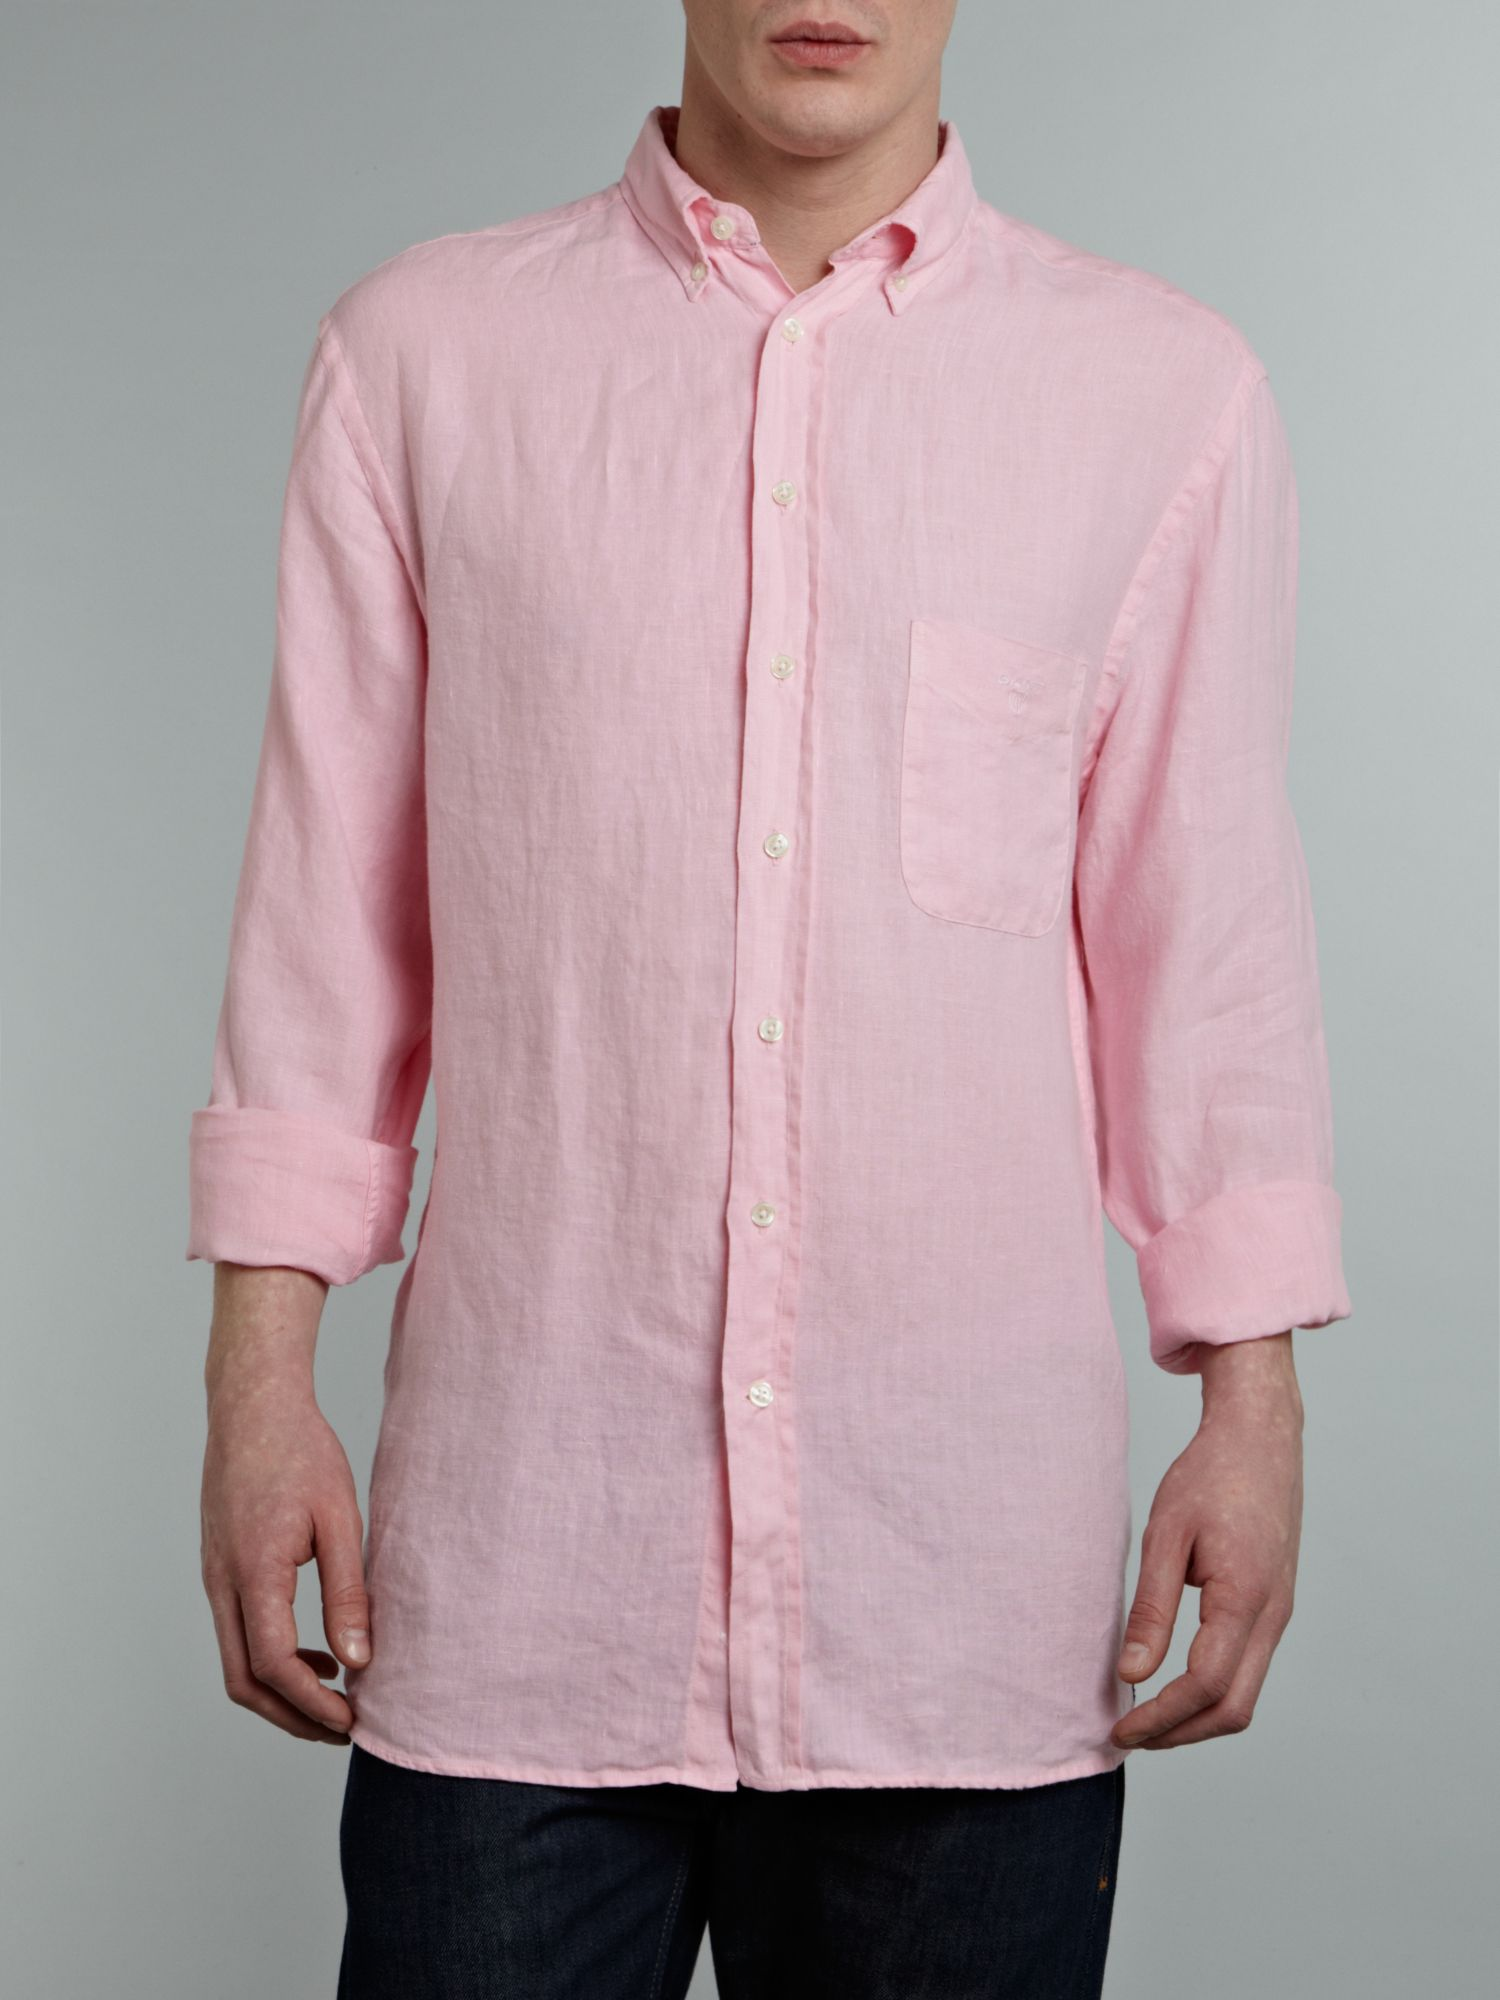 Long sleeved linen shirt